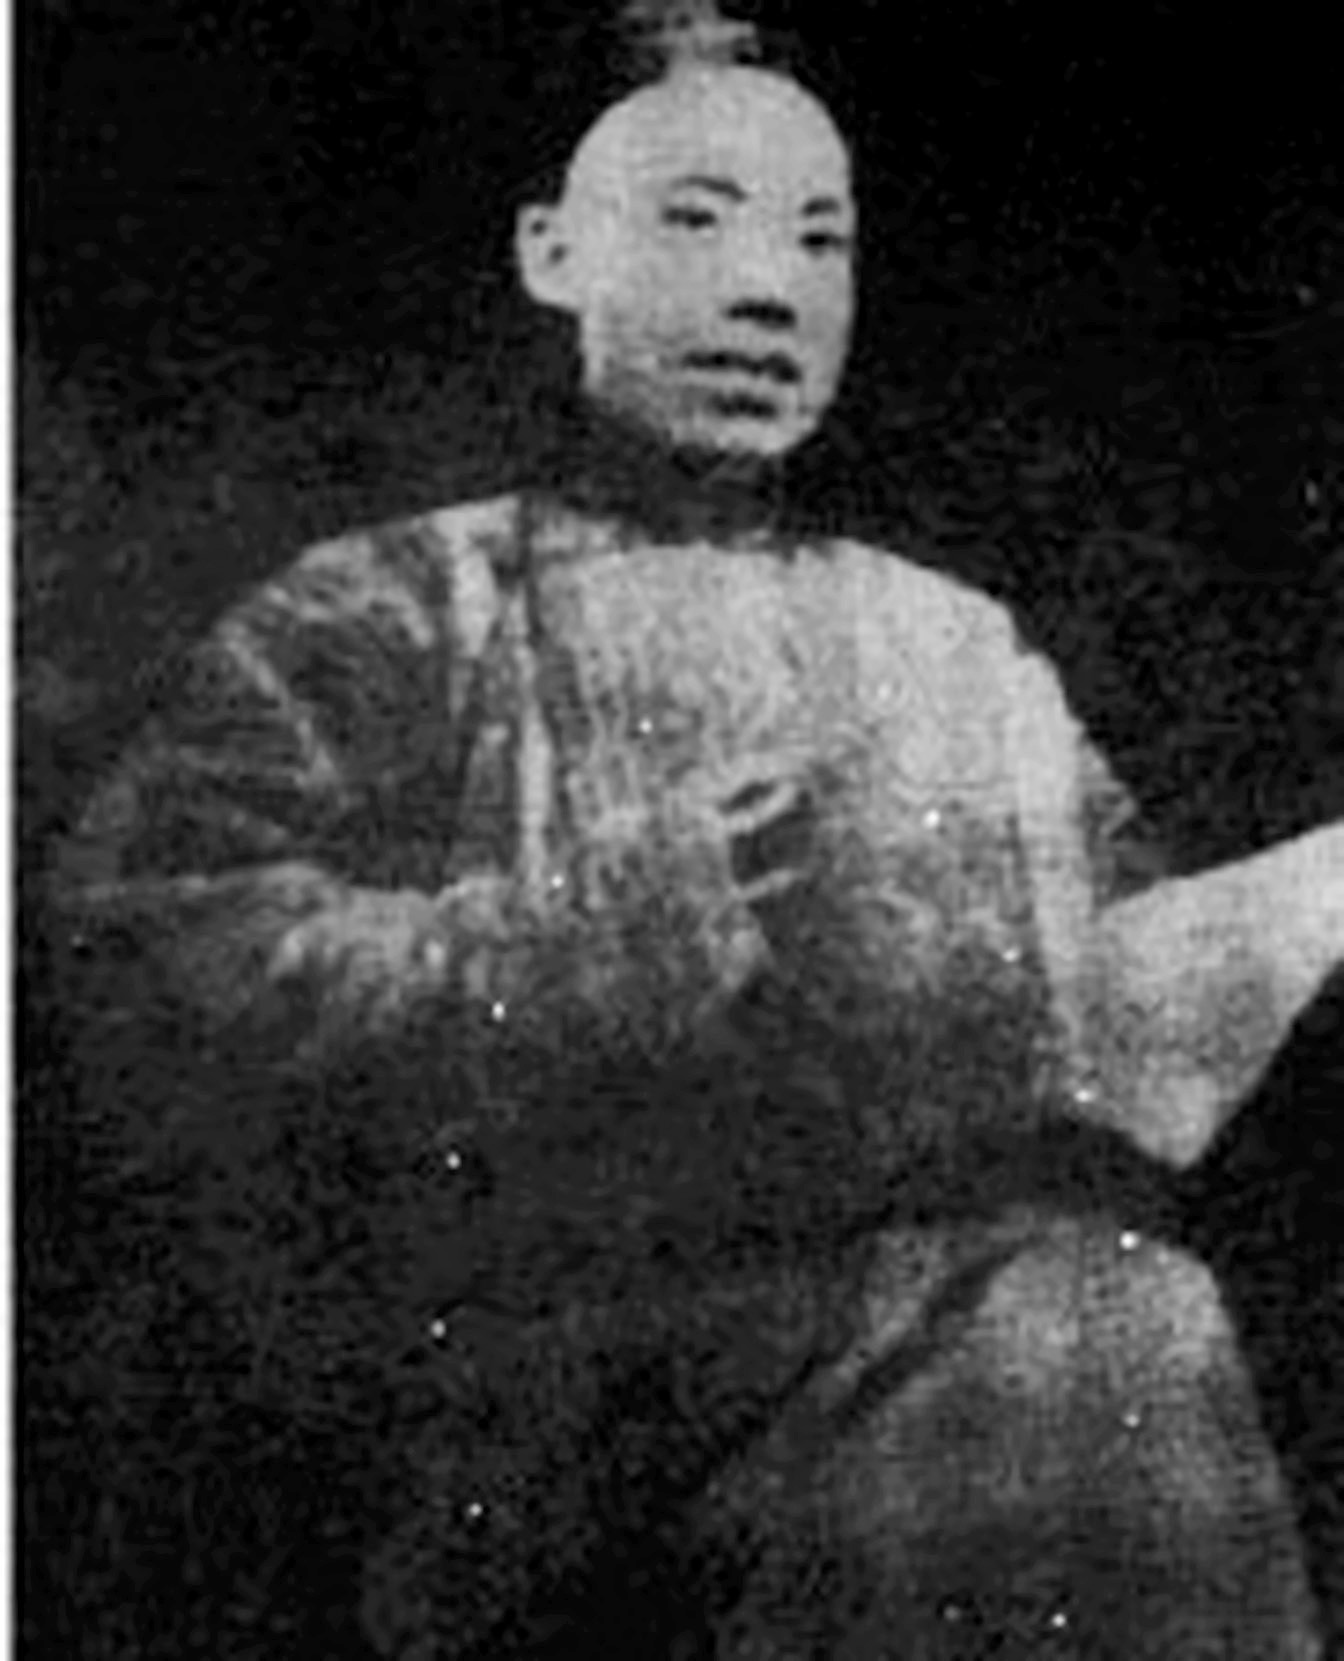 Yang Shenxiu, a politician during the late Qing Dynasty, who played an important role in the Hundred Days' Reform